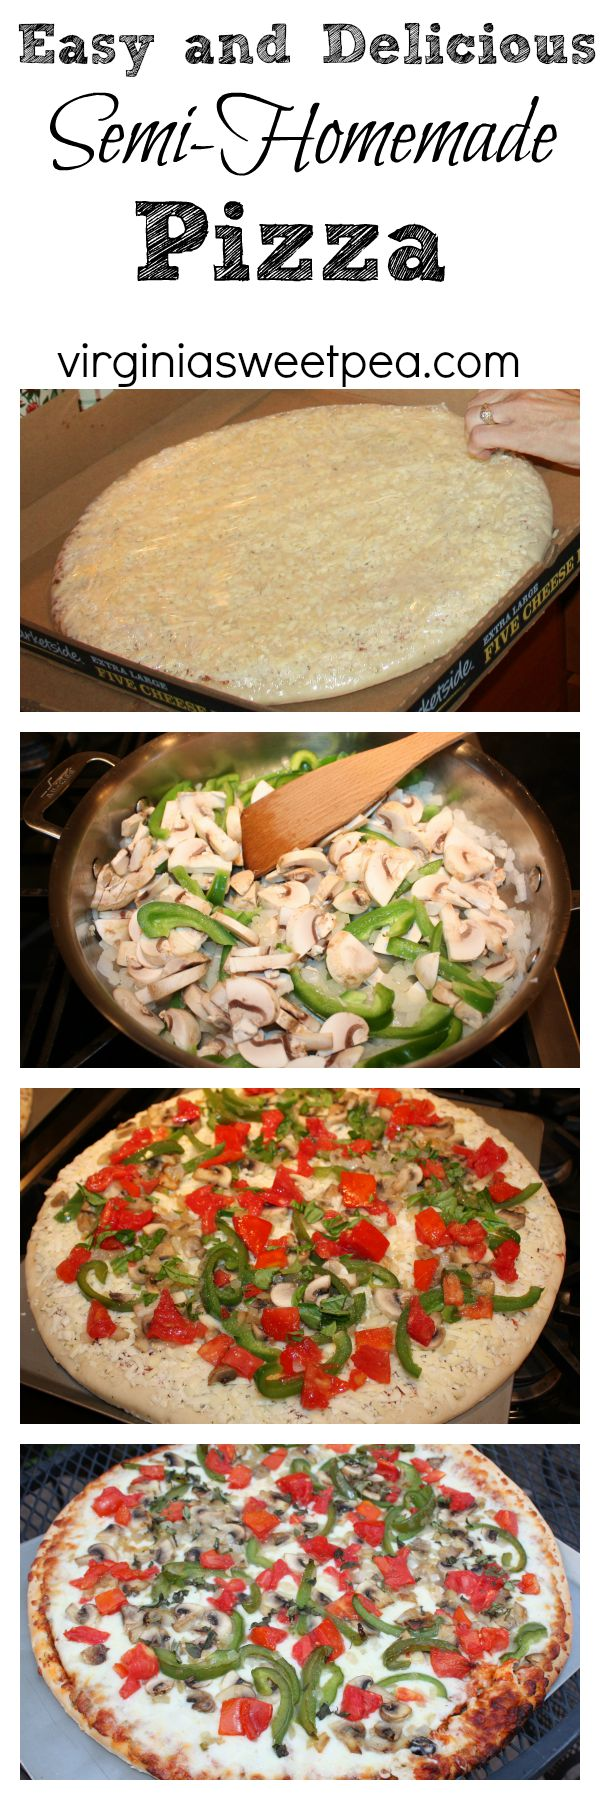 Easy and Delicious Semi-Homemade Pizza by virginiasweetpea.com